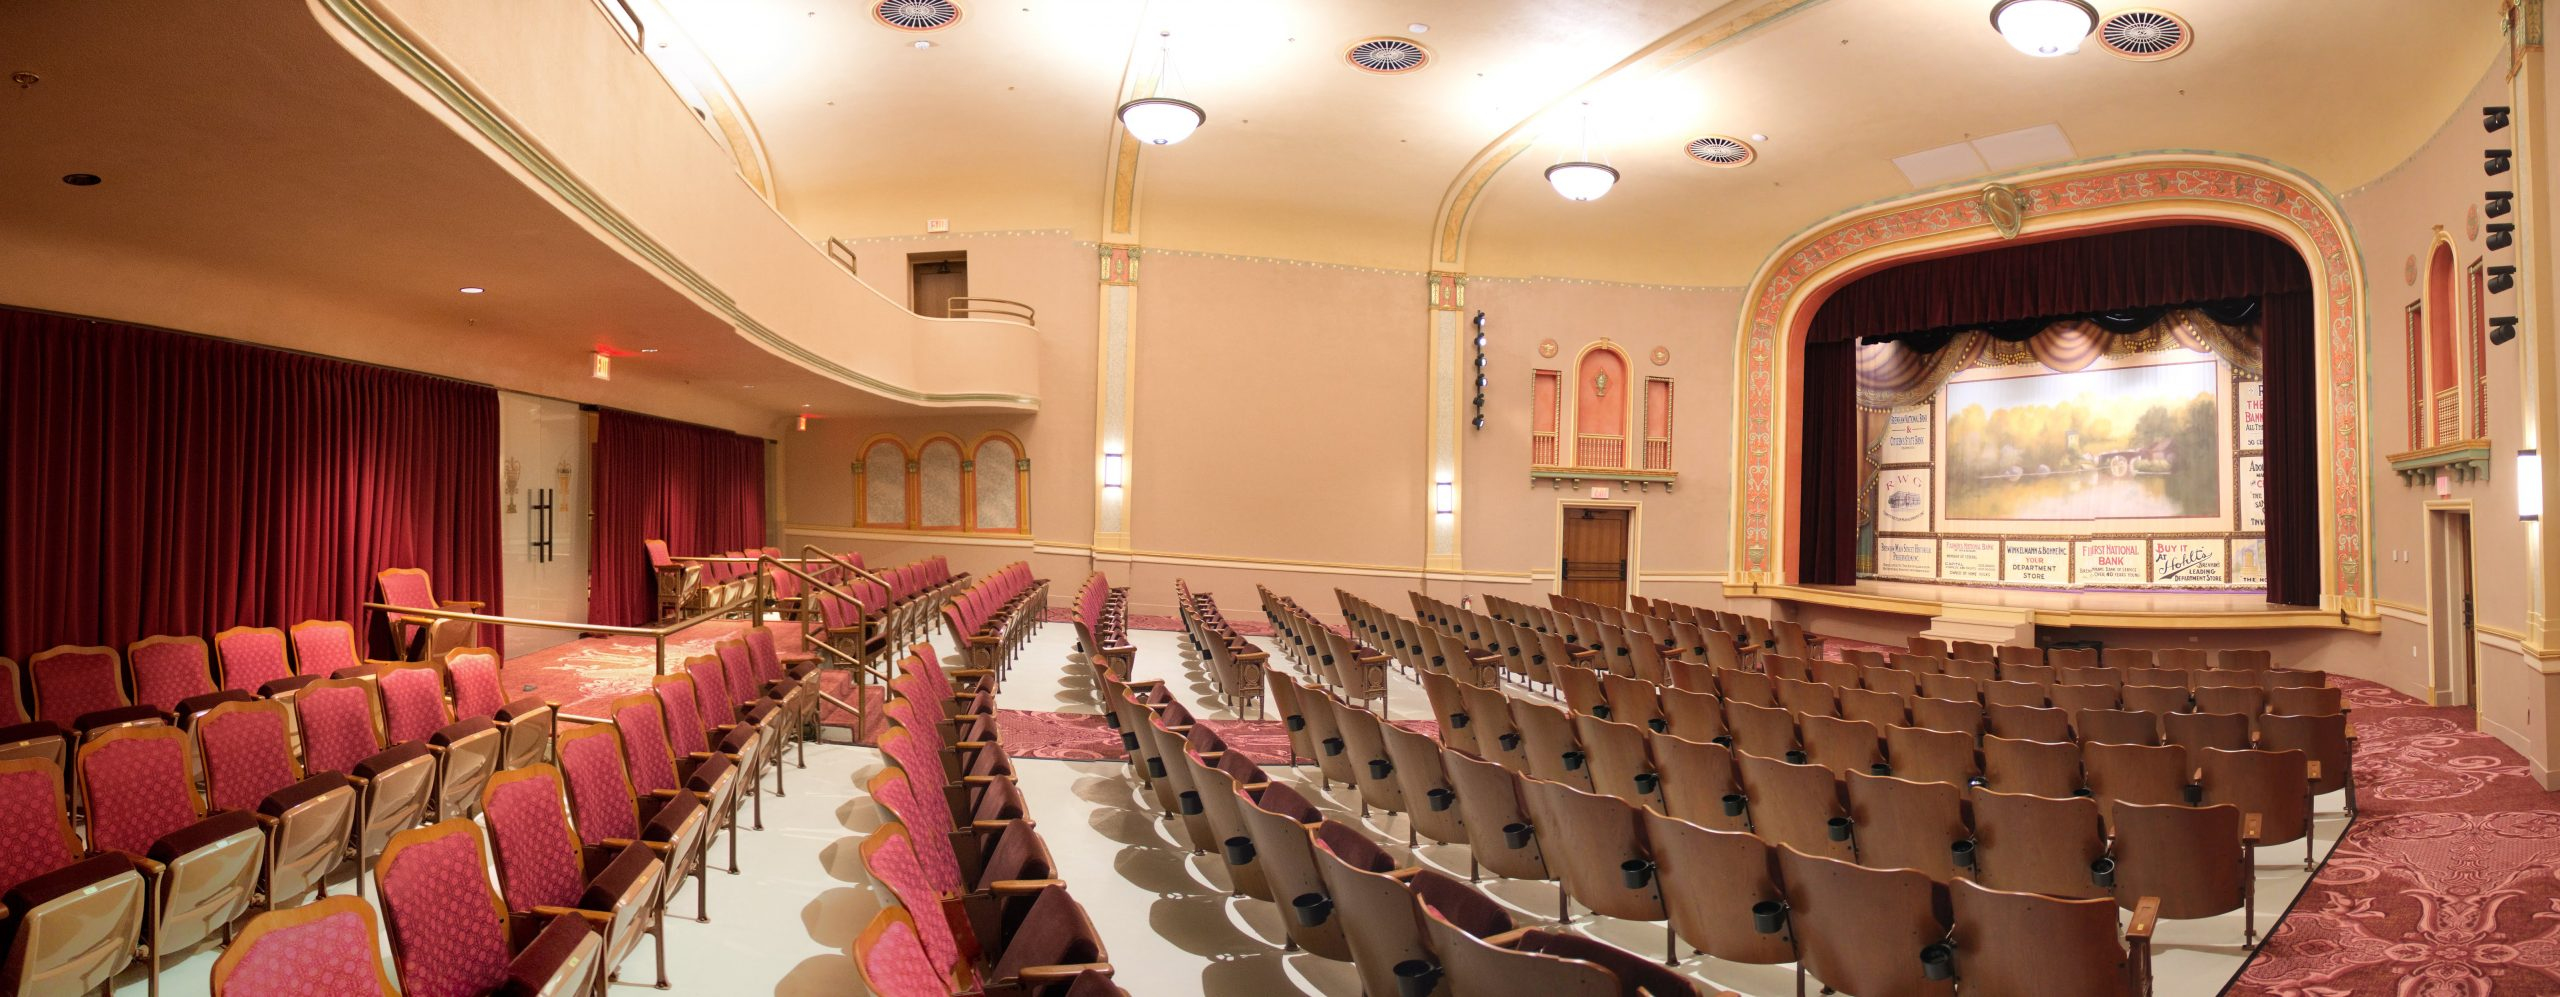 The historic Hasskarl Auditorium with rows of chairs facing a vintage stage with painted backdrop.